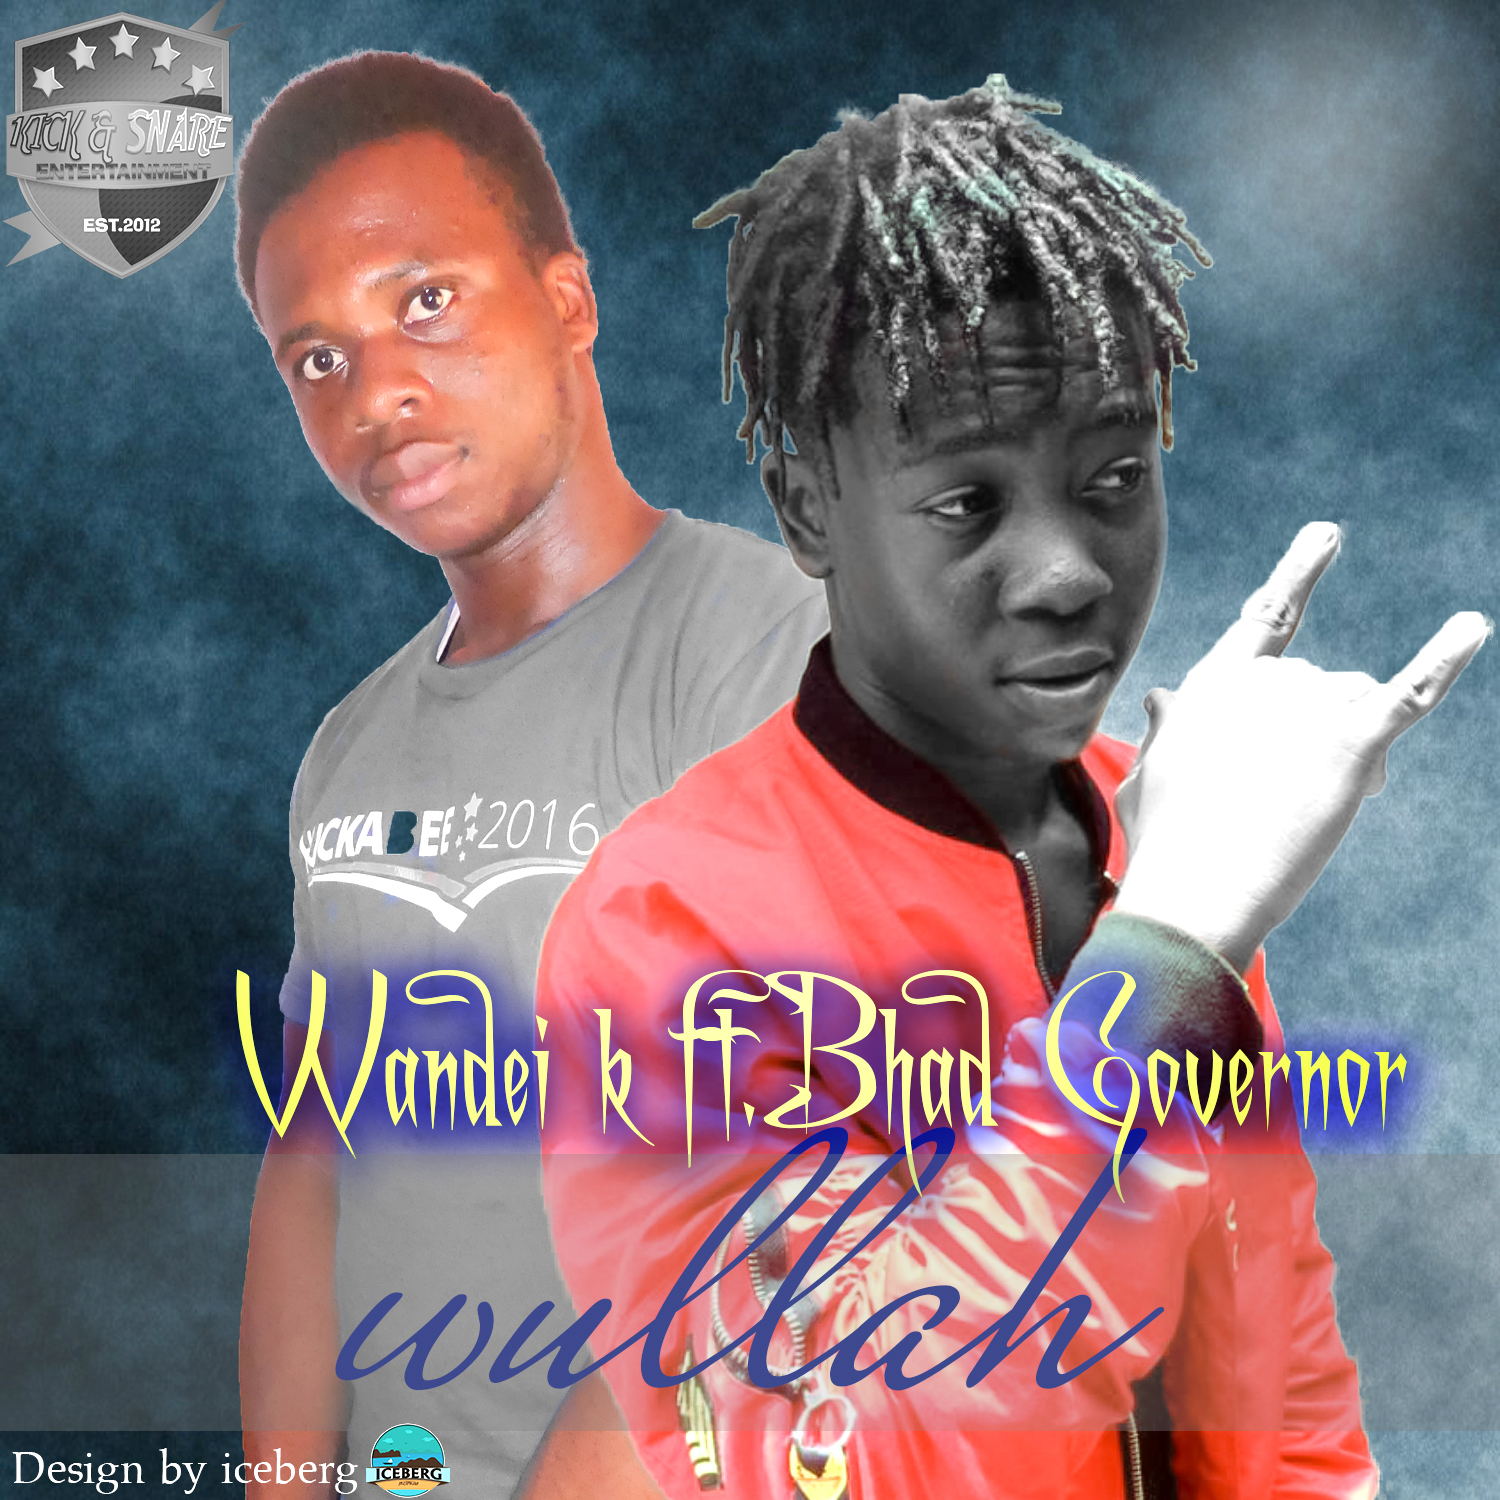 Wandei K Ft Bhad Governor – Wullah (Prod By Kick & Snare